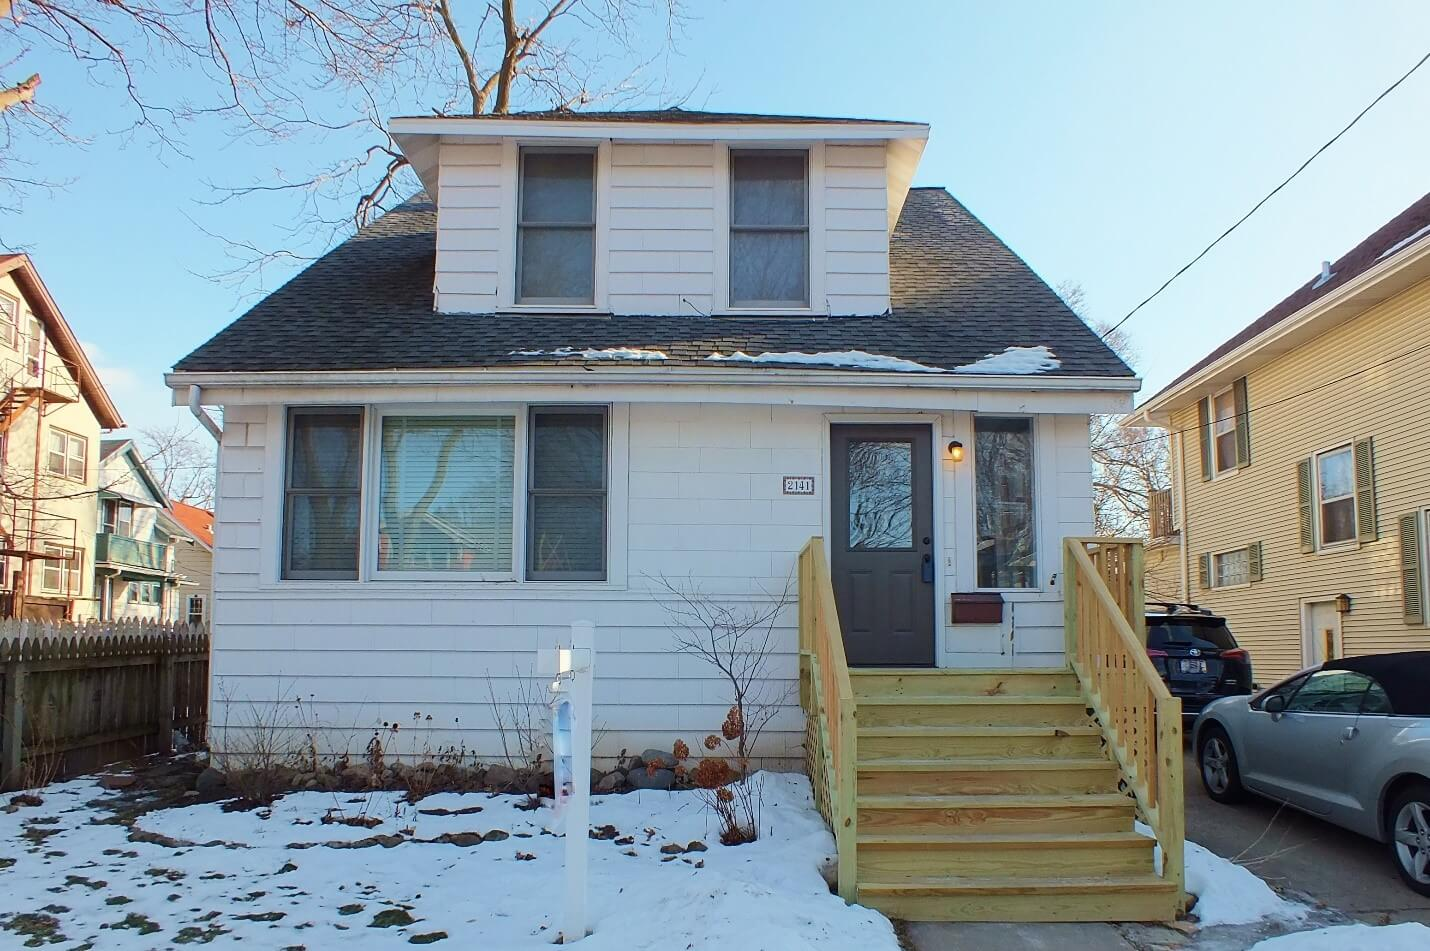 2141 E. Mifflin St., Madison, WI – Sold by Alvarado Real Estate Group